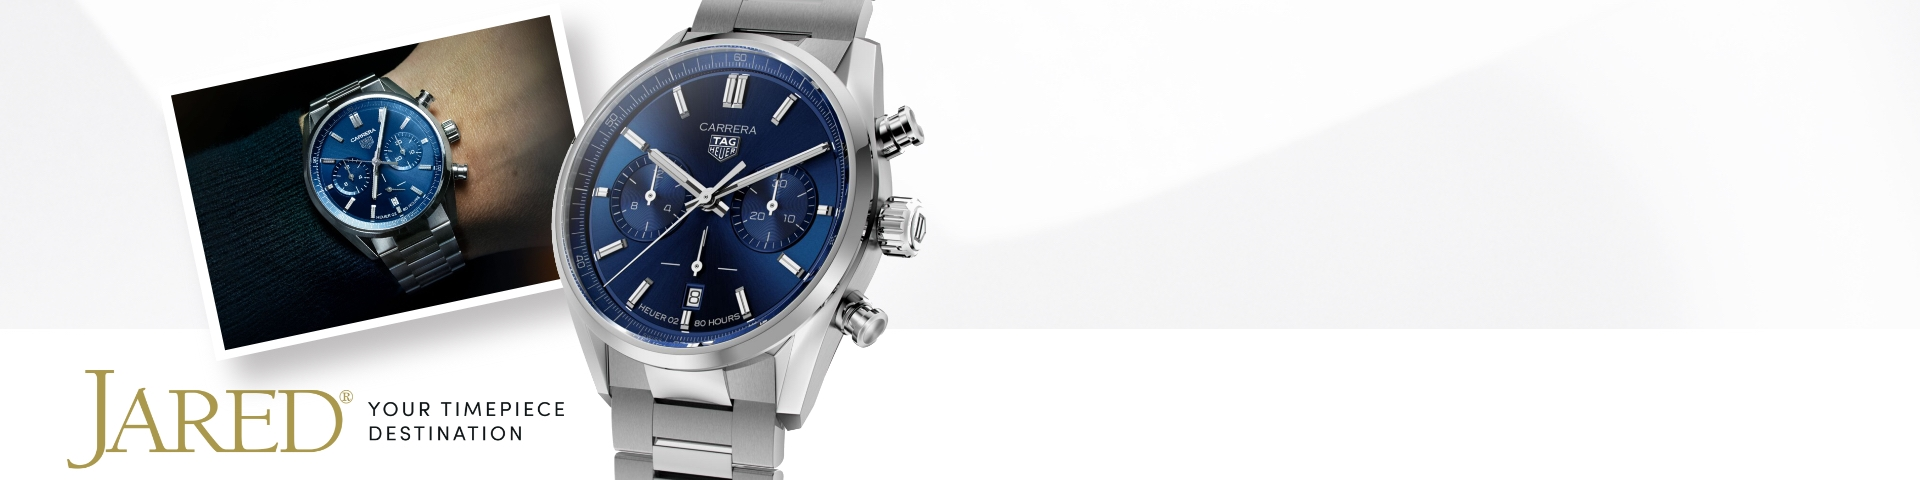 TAG Heuer Carrera watch with blue dial and stainless steel bracelet next to the Jared timepiece destination logo.